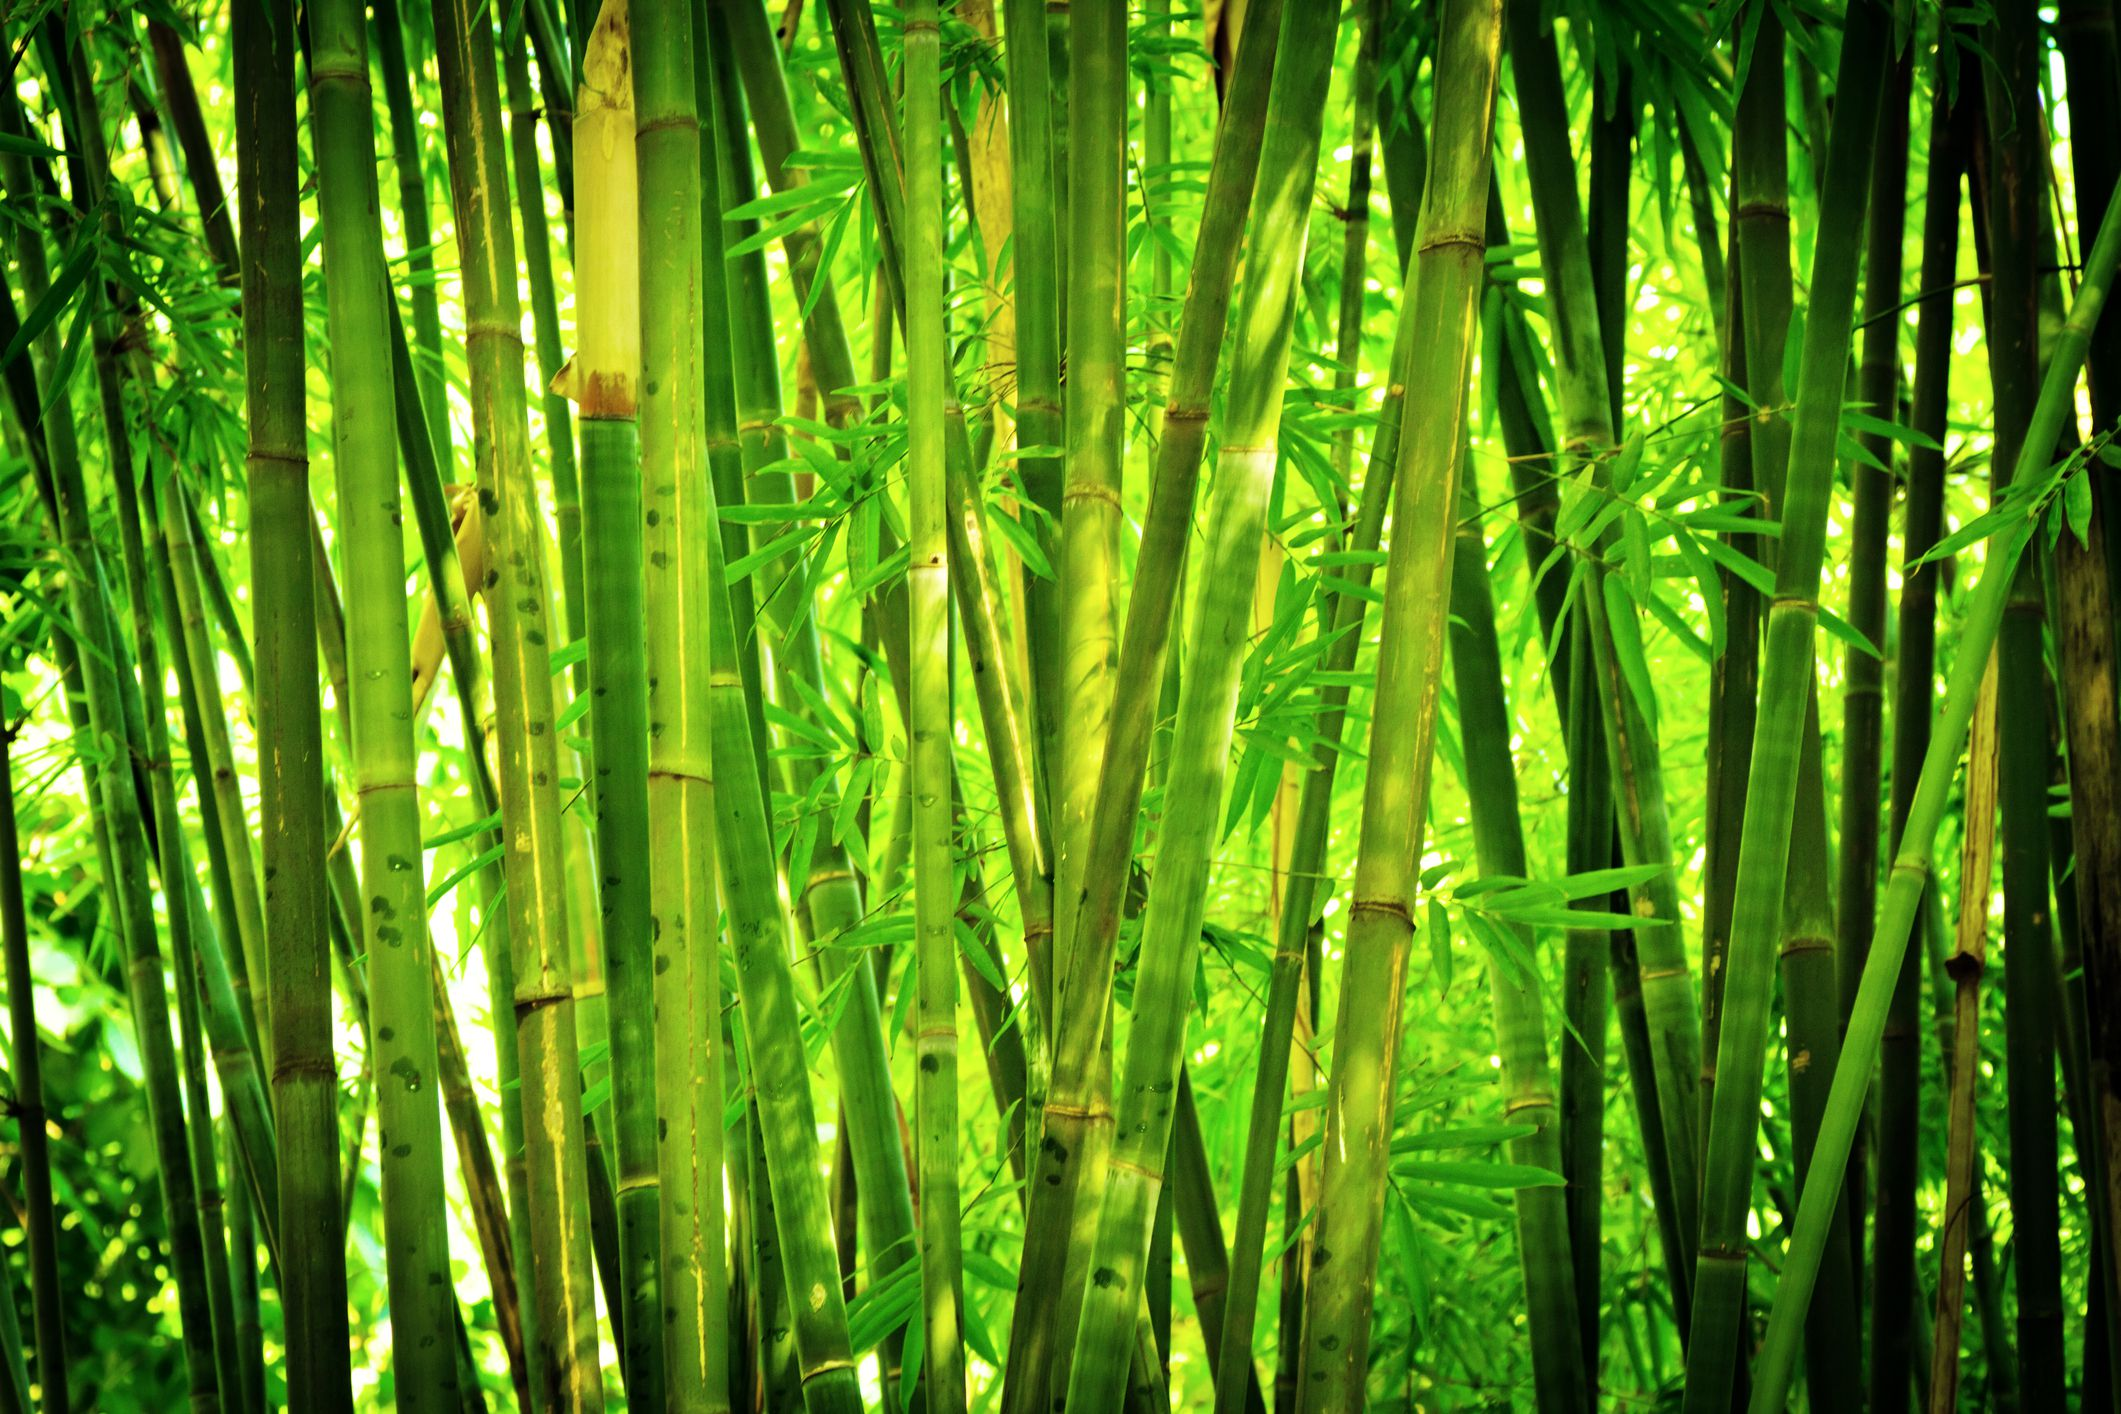 bamboo privacy hedges are they good noise barriers